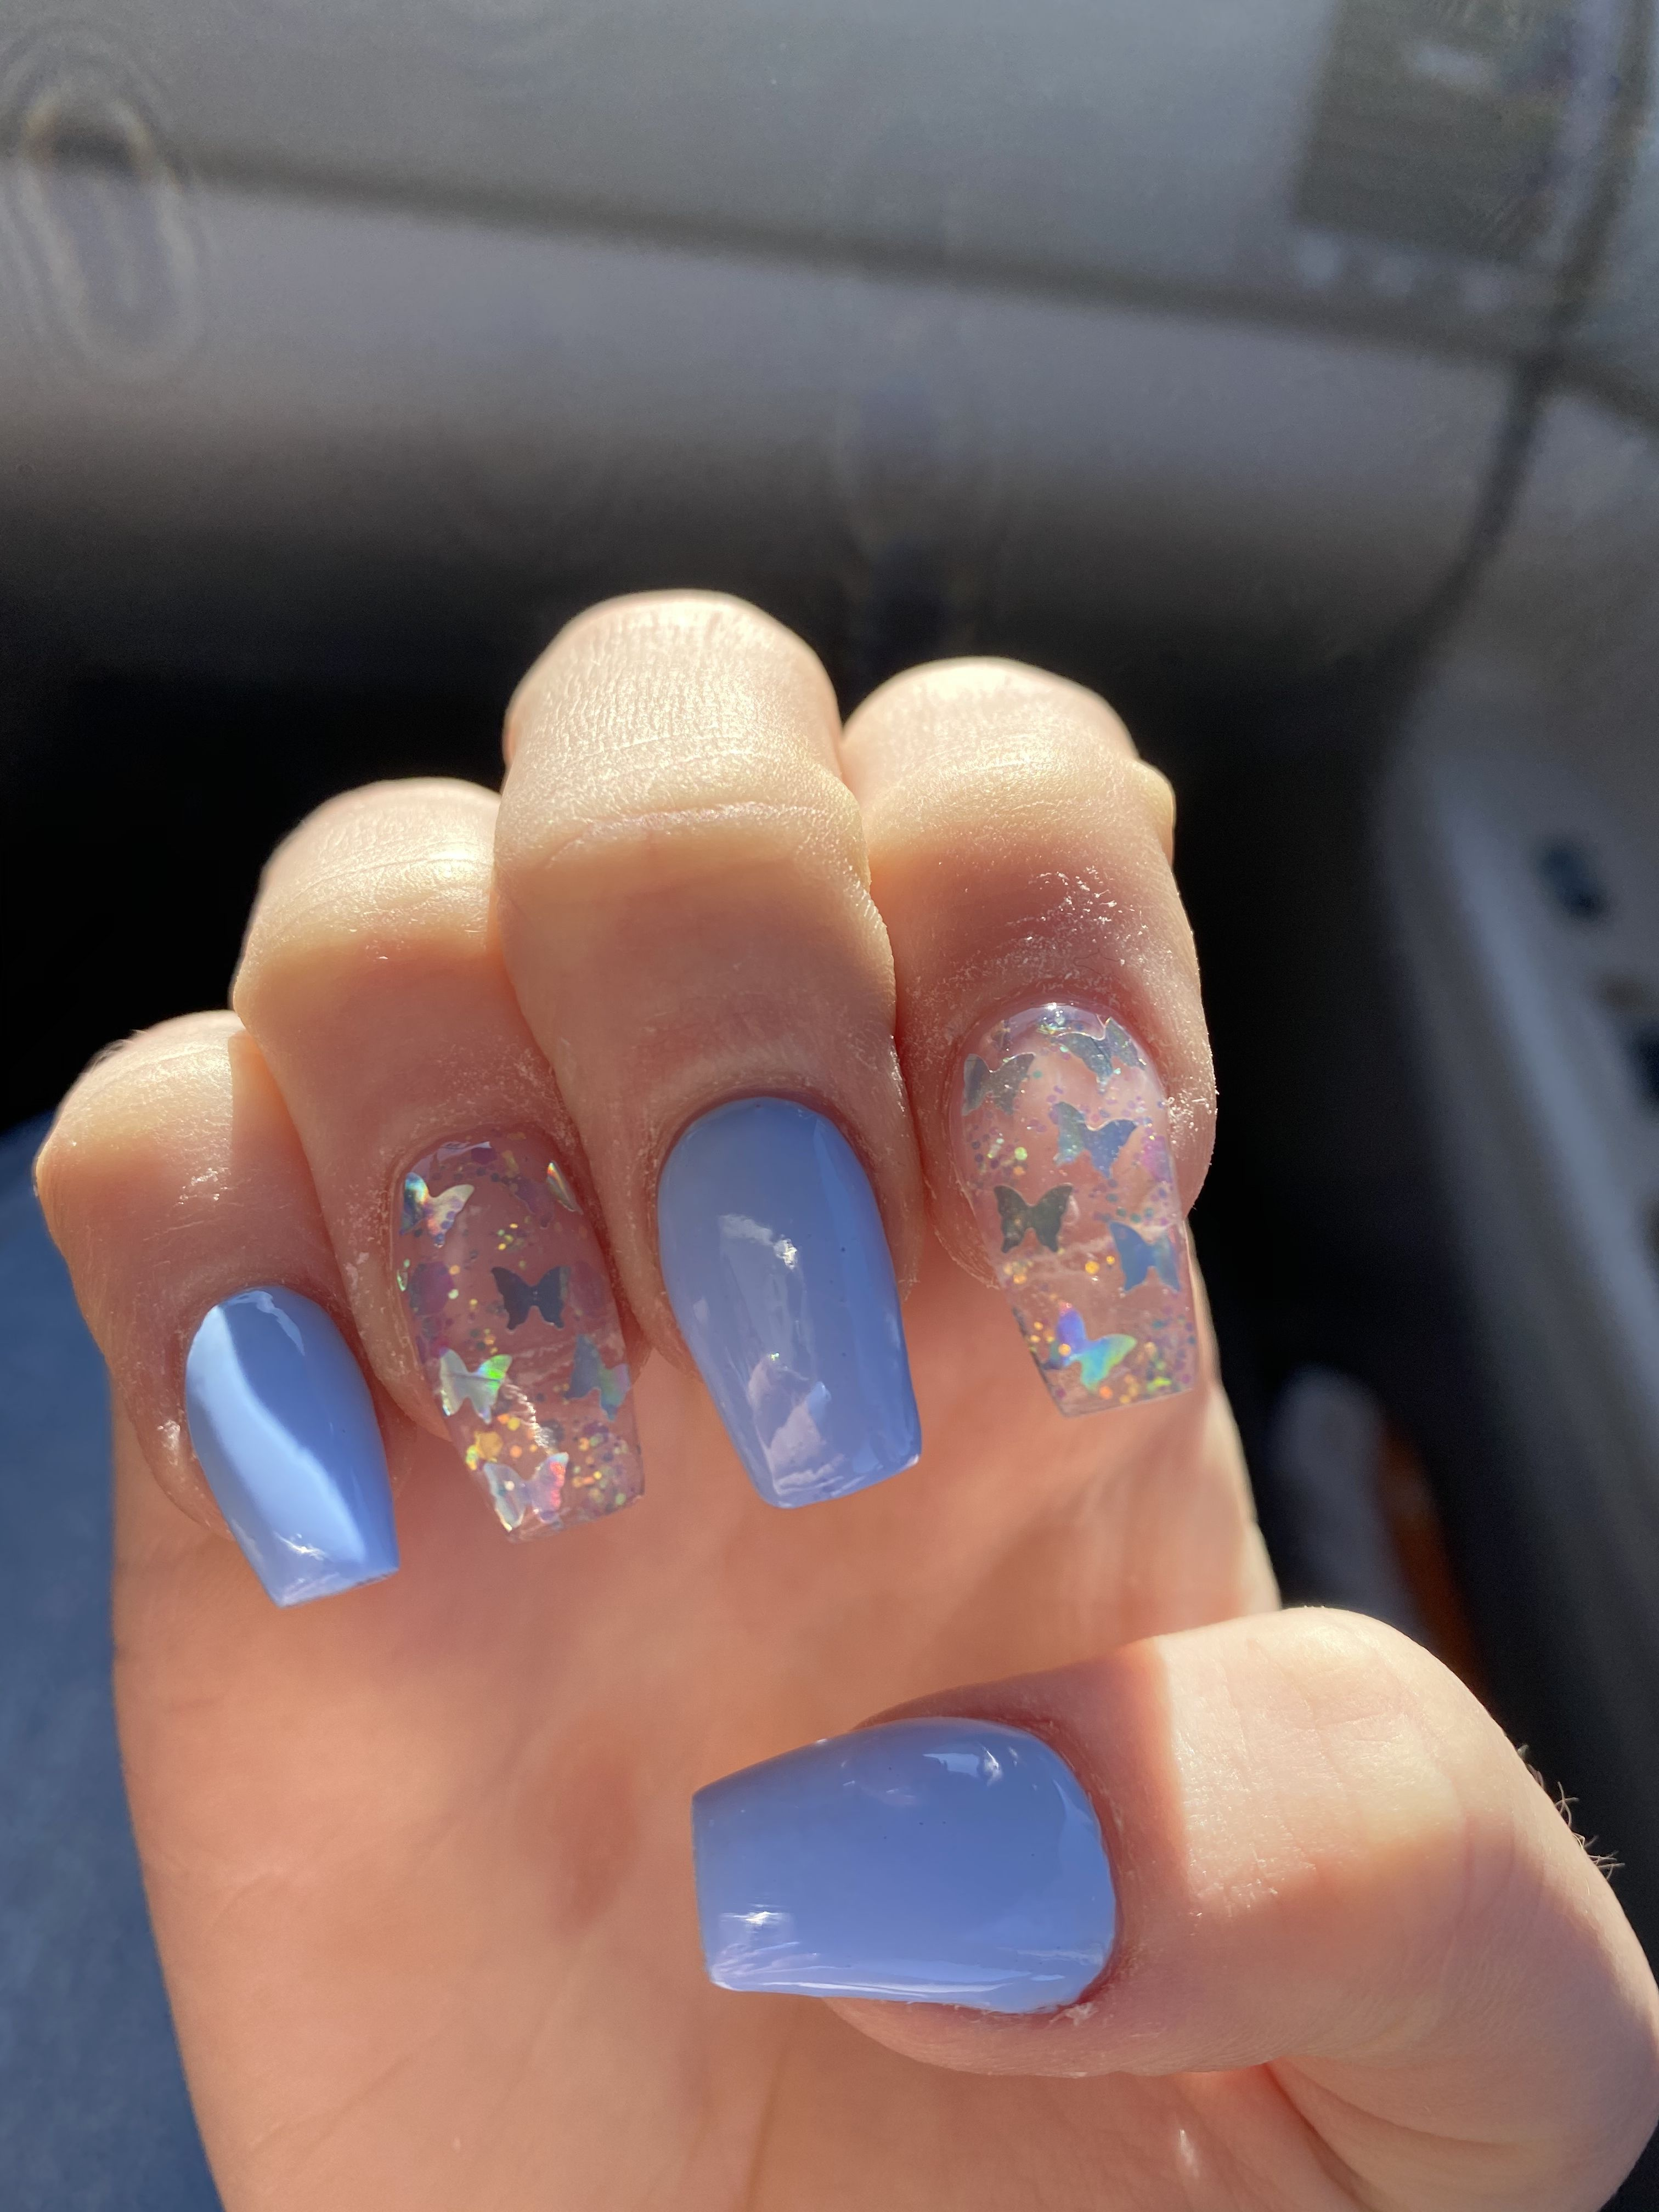 Blue Butterfly Nails In 2020 Blue Glitter Nails Pink Acrylic Nails Short Acrylic Nails Designs